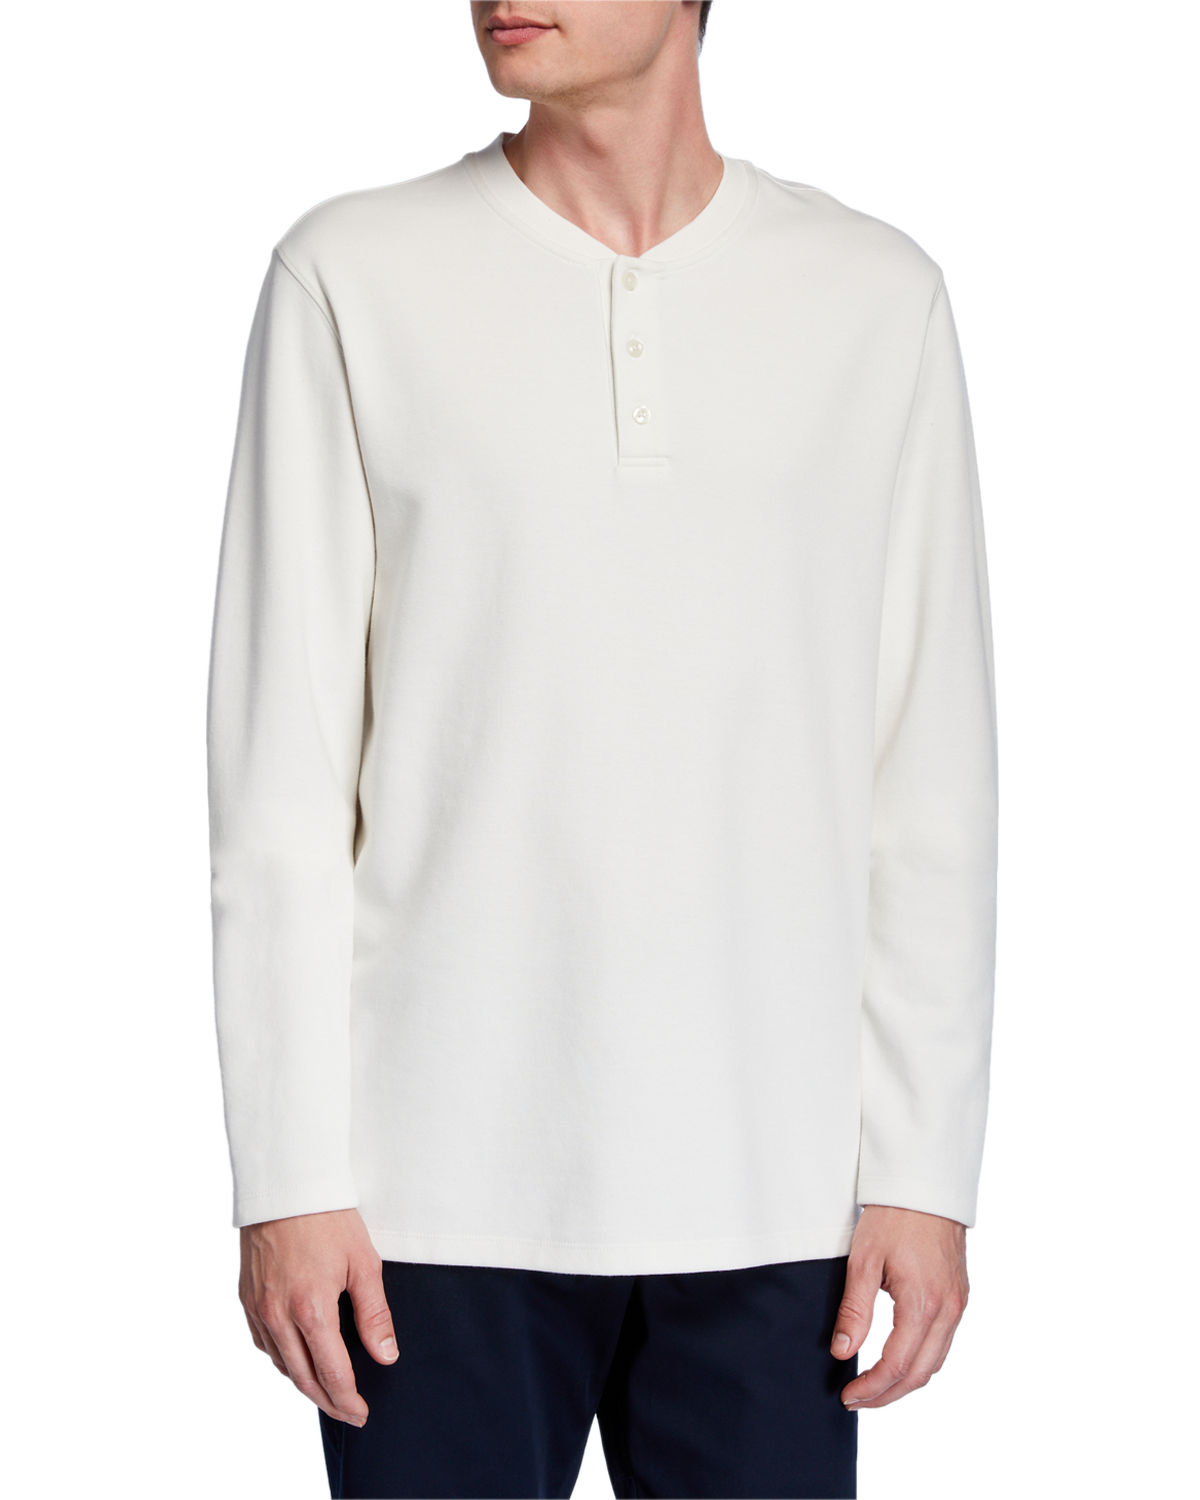 Vince Knits MEN'S DOUBLE-KNIT HENLEY SHIRT